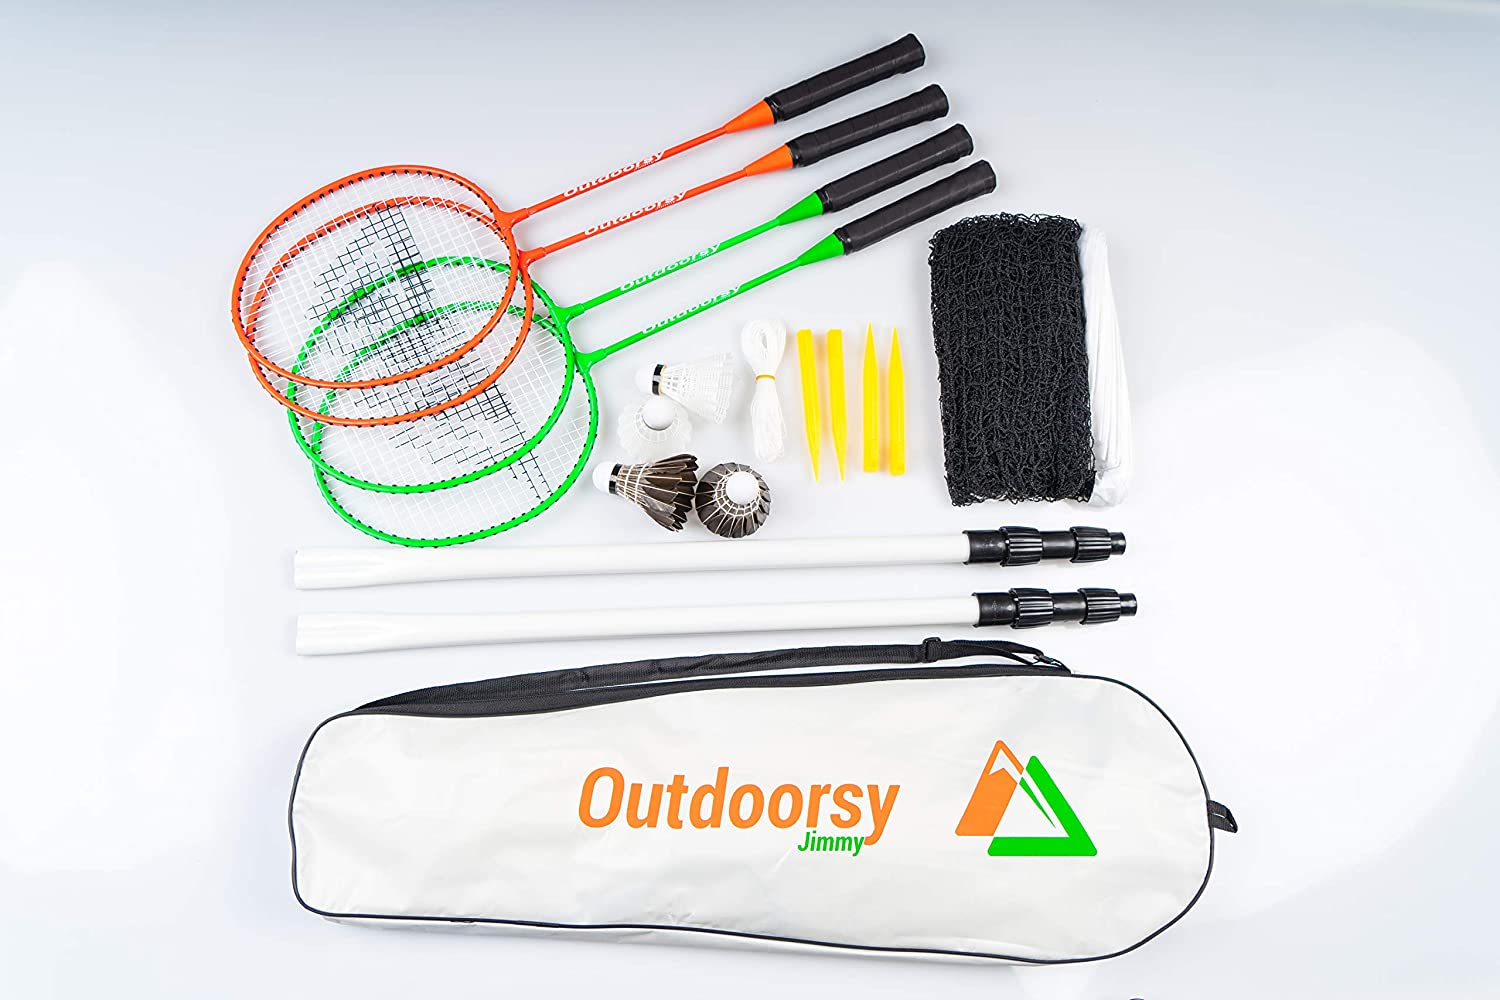 OutdoorsyJimmy Complete Badminton Sets for Backyards - Premium Set Includes Badminton Rackets Set of 4, Portable Badminton Net with Expandable Poles, 4 Birdies/Shuttlecocks & Storage Travel Bag